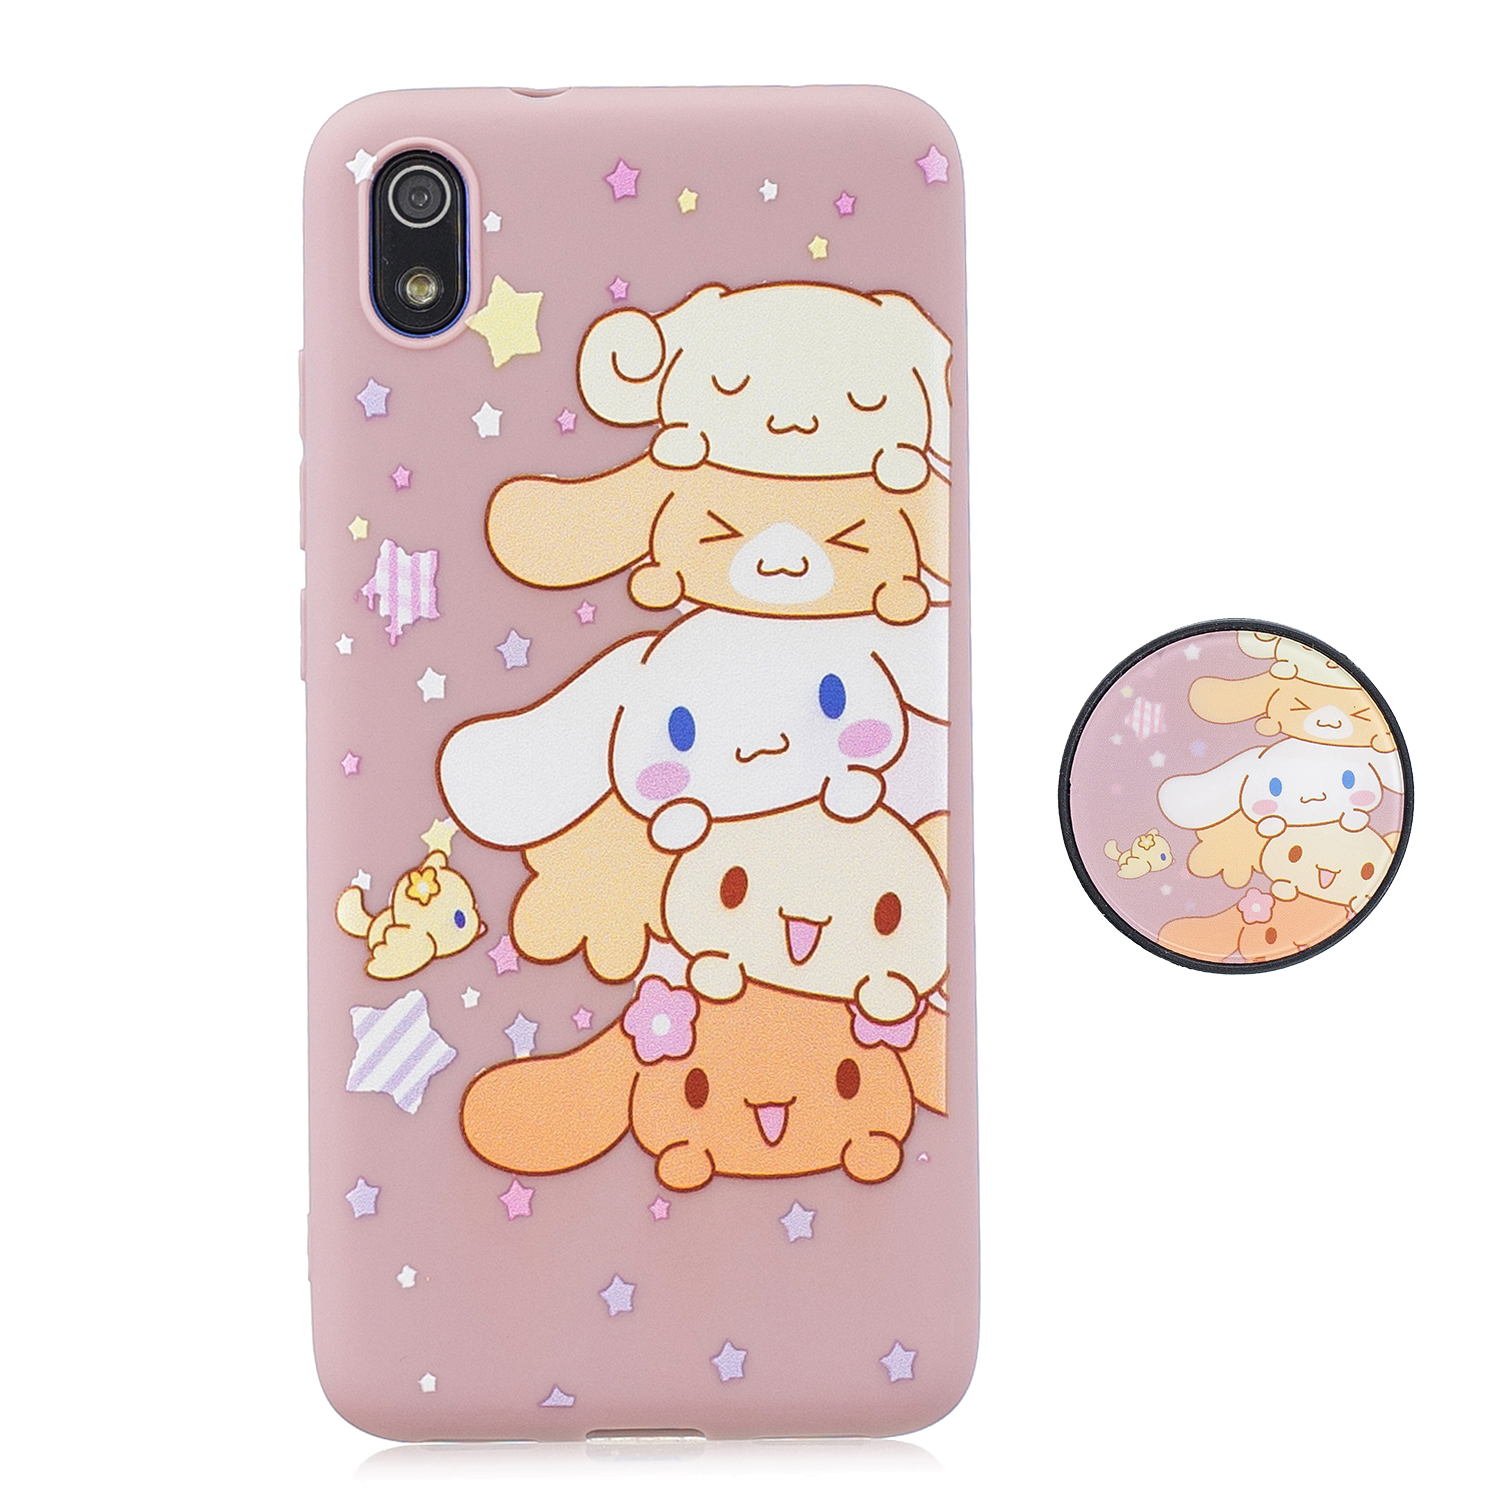 For Redmi 7A Soft TPU Full Cover Phone Case Protector Back Cover Phone Case with Matched Pattern Adjustable Bracket 1